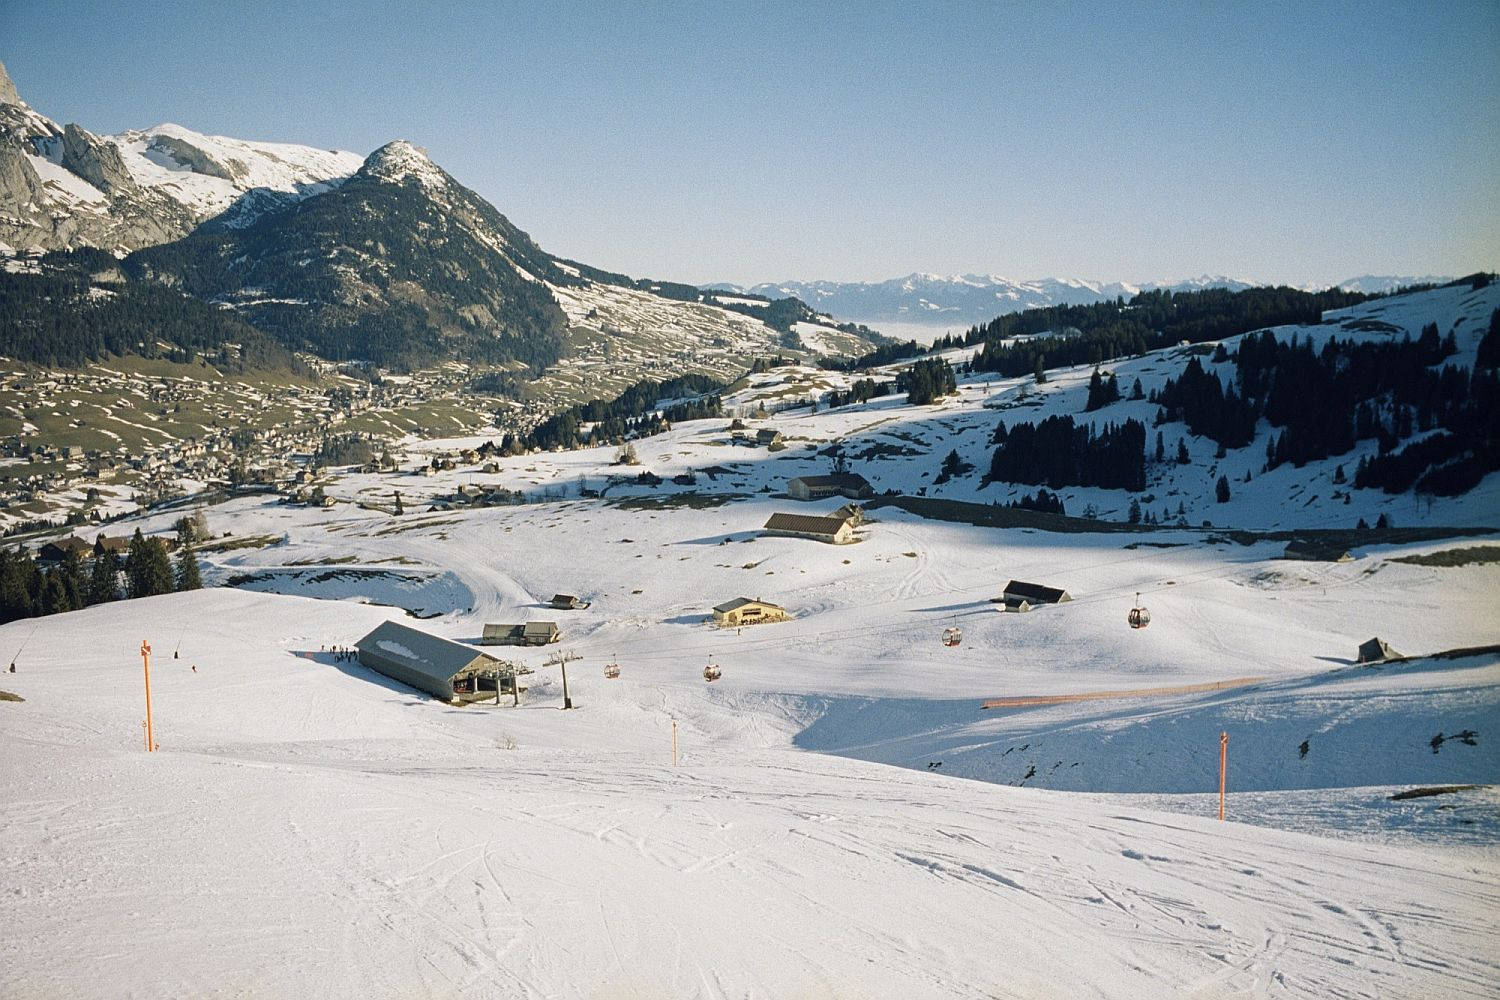 Snow-covered-mountains-and-ski-slopes-around-the-cabin